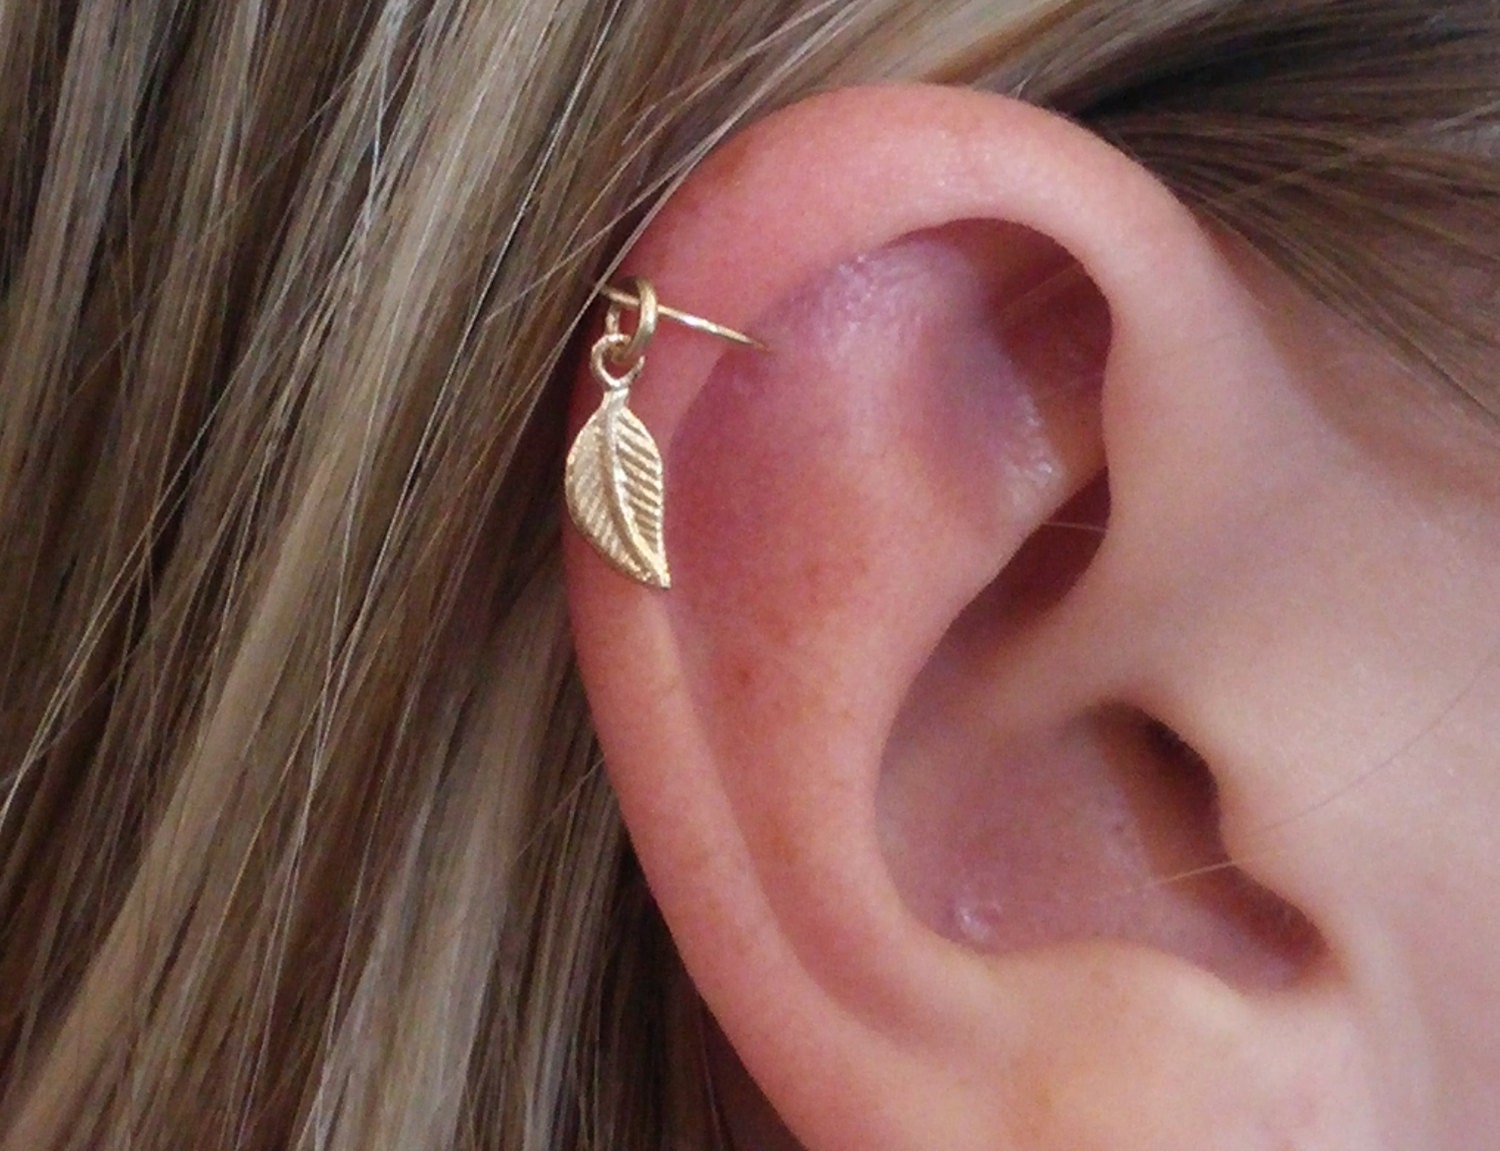 helix earring feather cartilage earring leaf cartilage